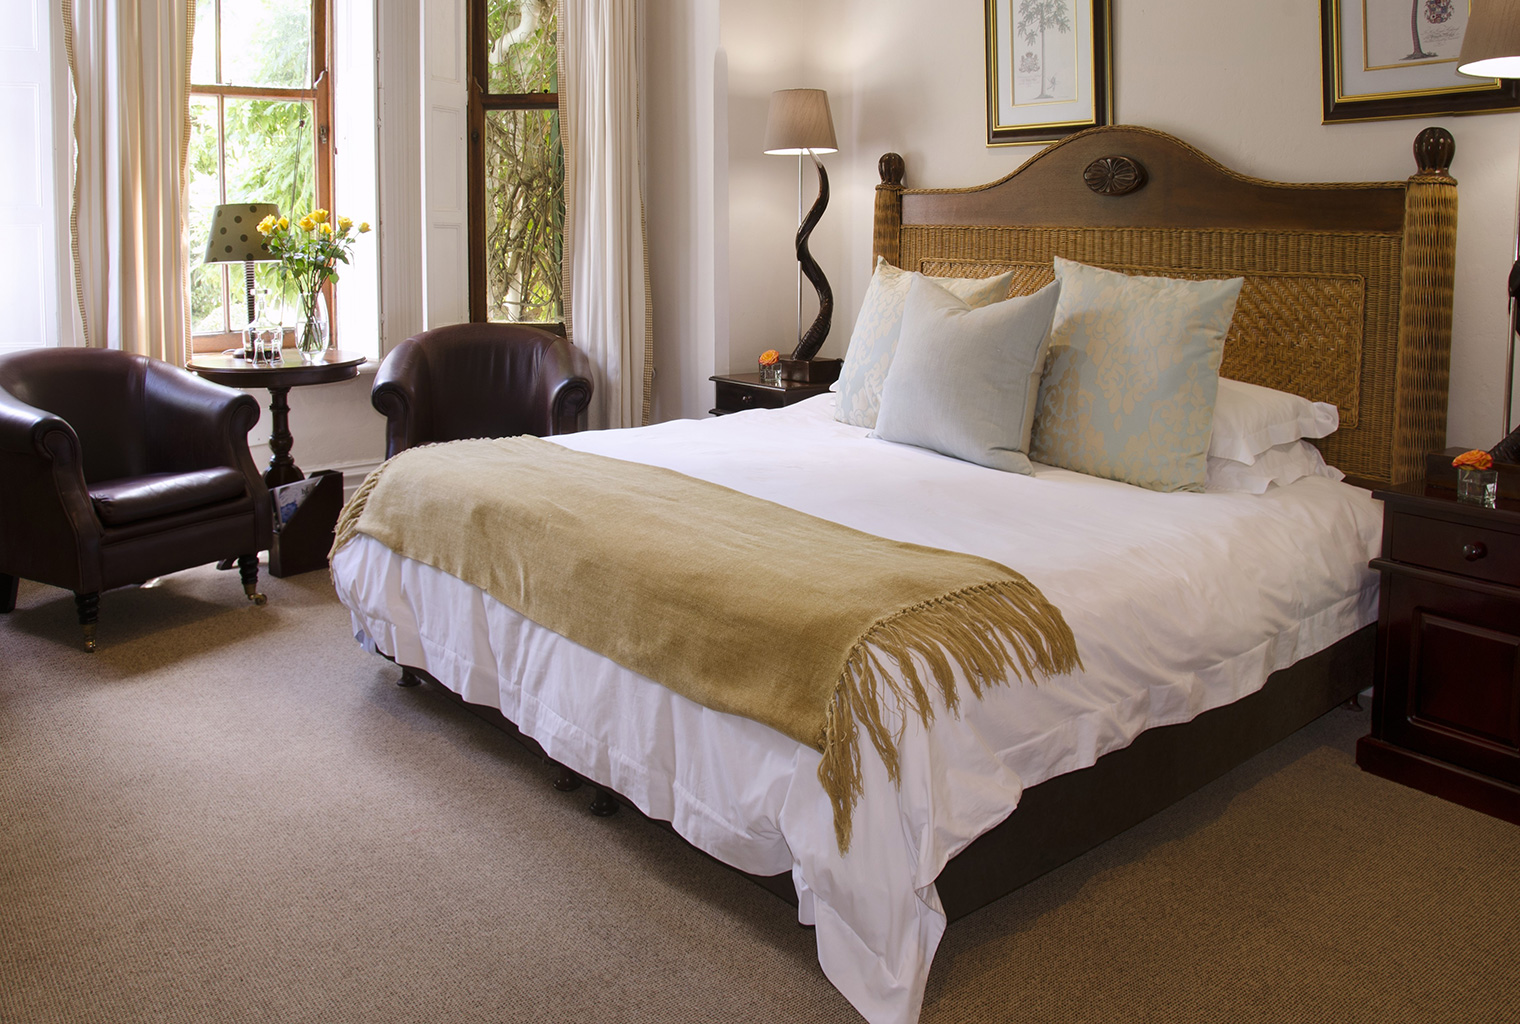 River-Manor-Guesthouse-and-Spa-South-Africa-Bedroom-2